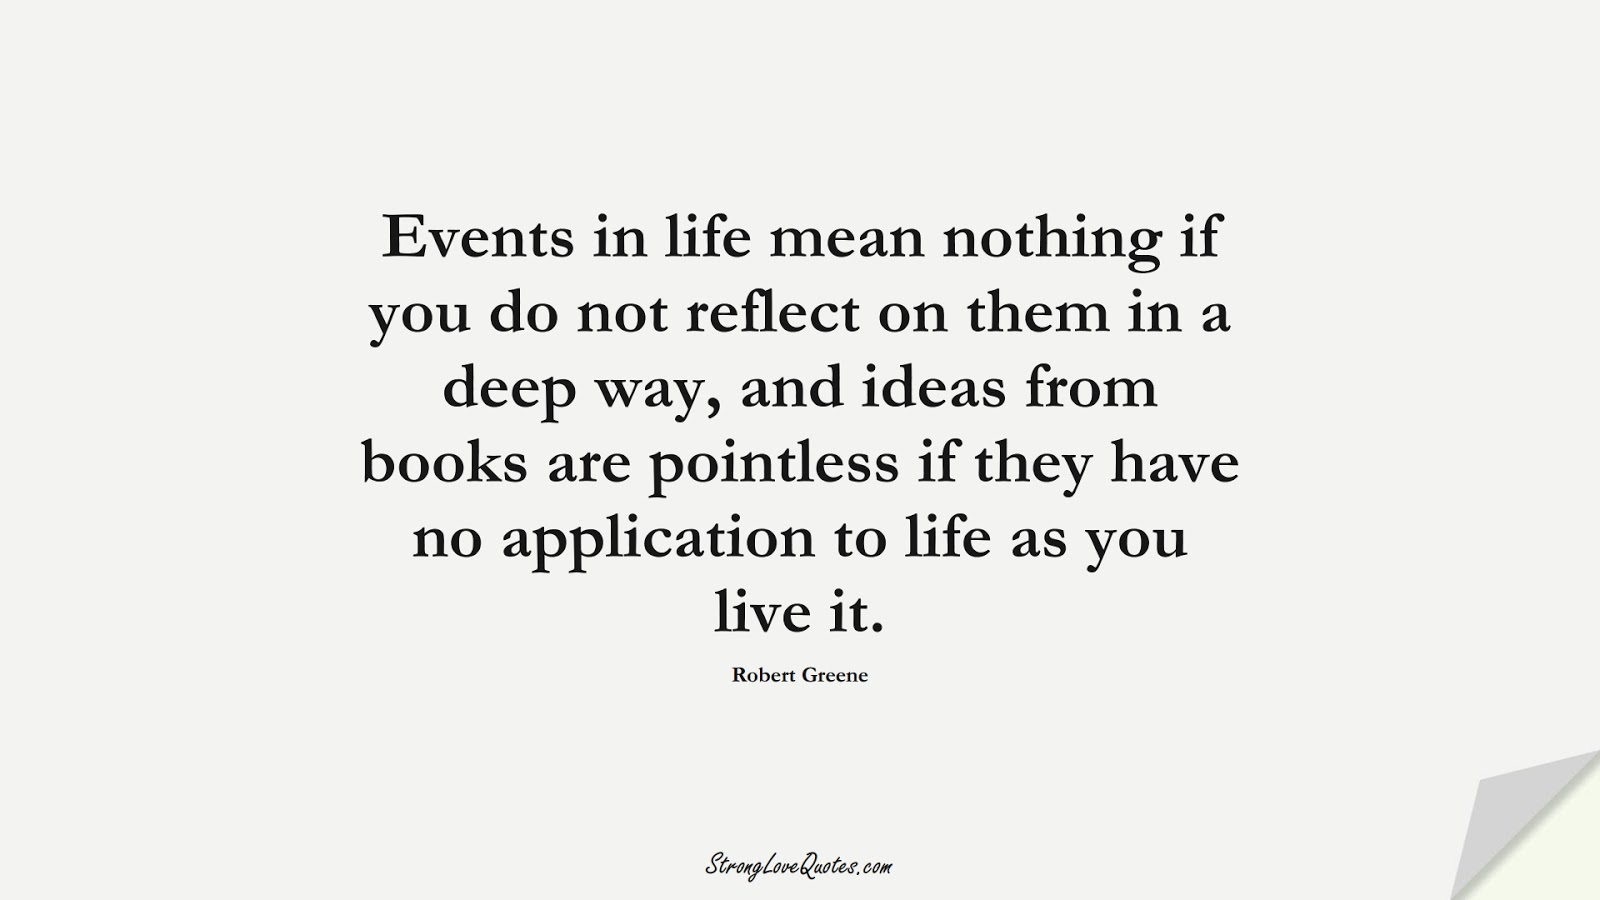 Events in life mean nothing if you do not reflect on them in a deep way, and ideas from books are pointless if they have no application to life as you live it. (Robert Greene);  #KnowledgeQuotes